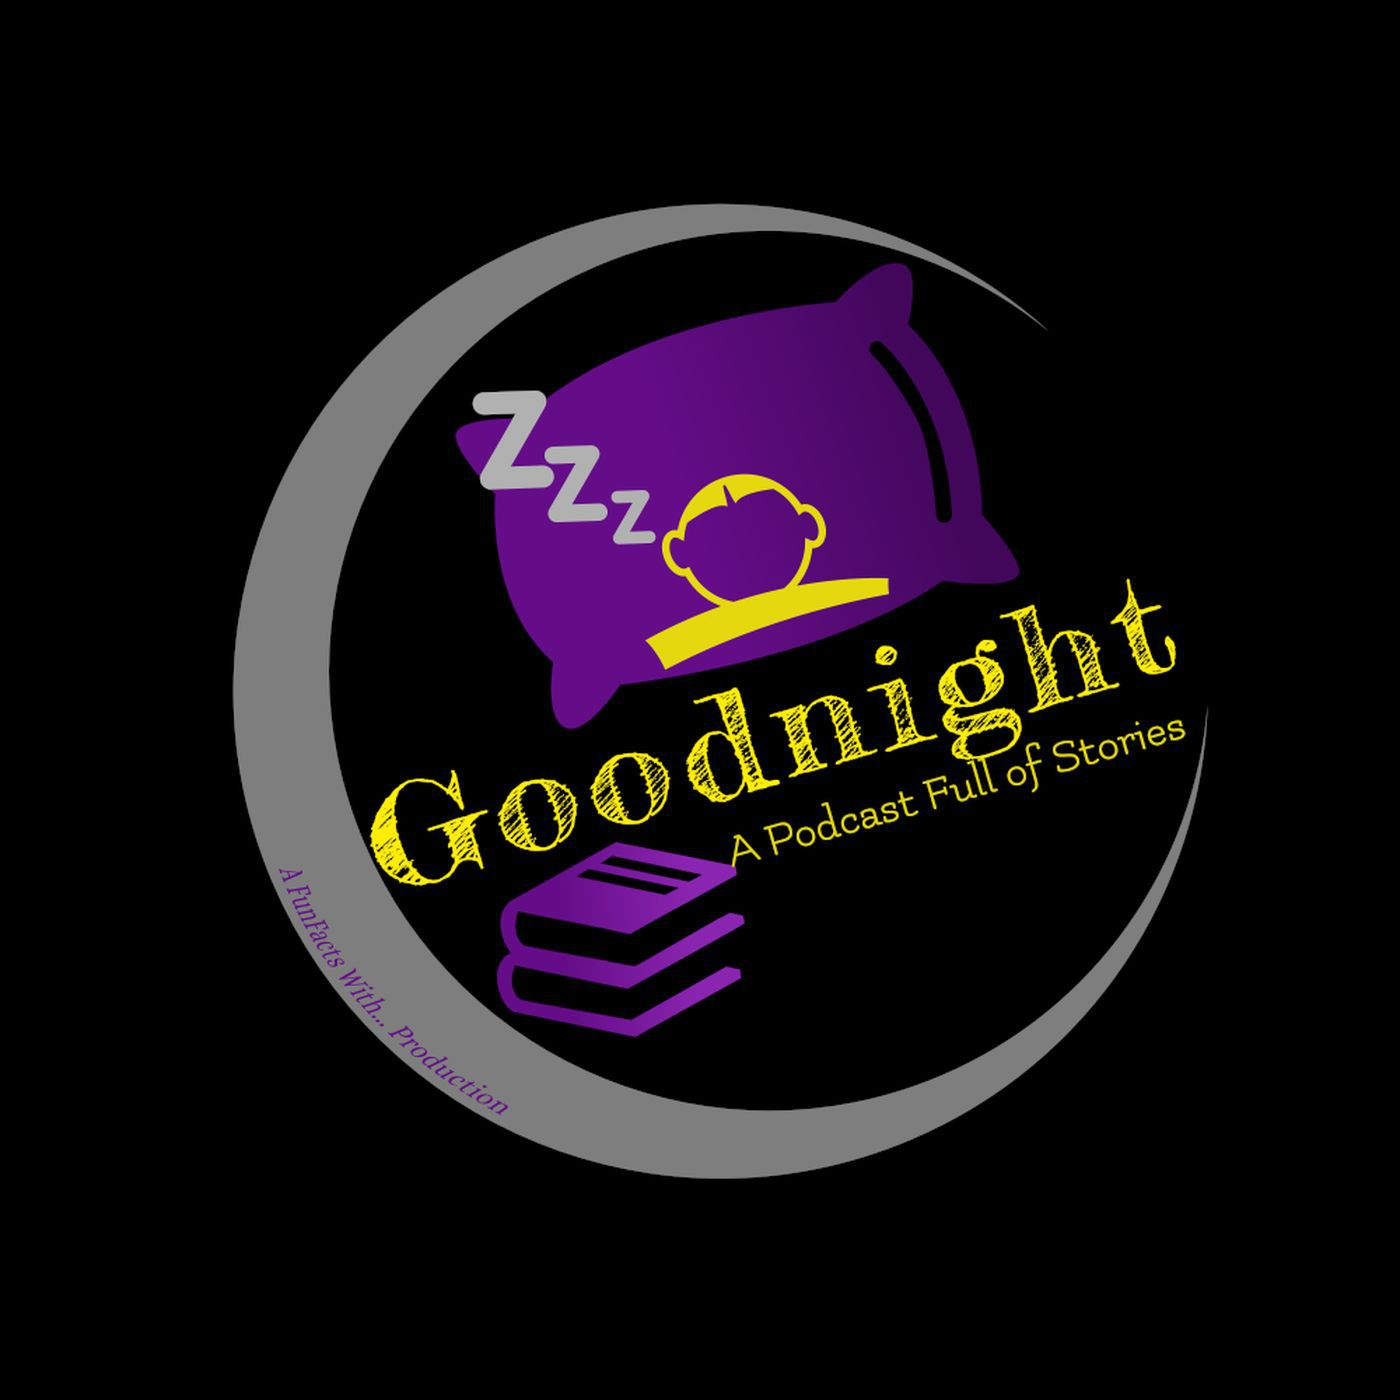 Goodnight: A Podcast Full of Stories!